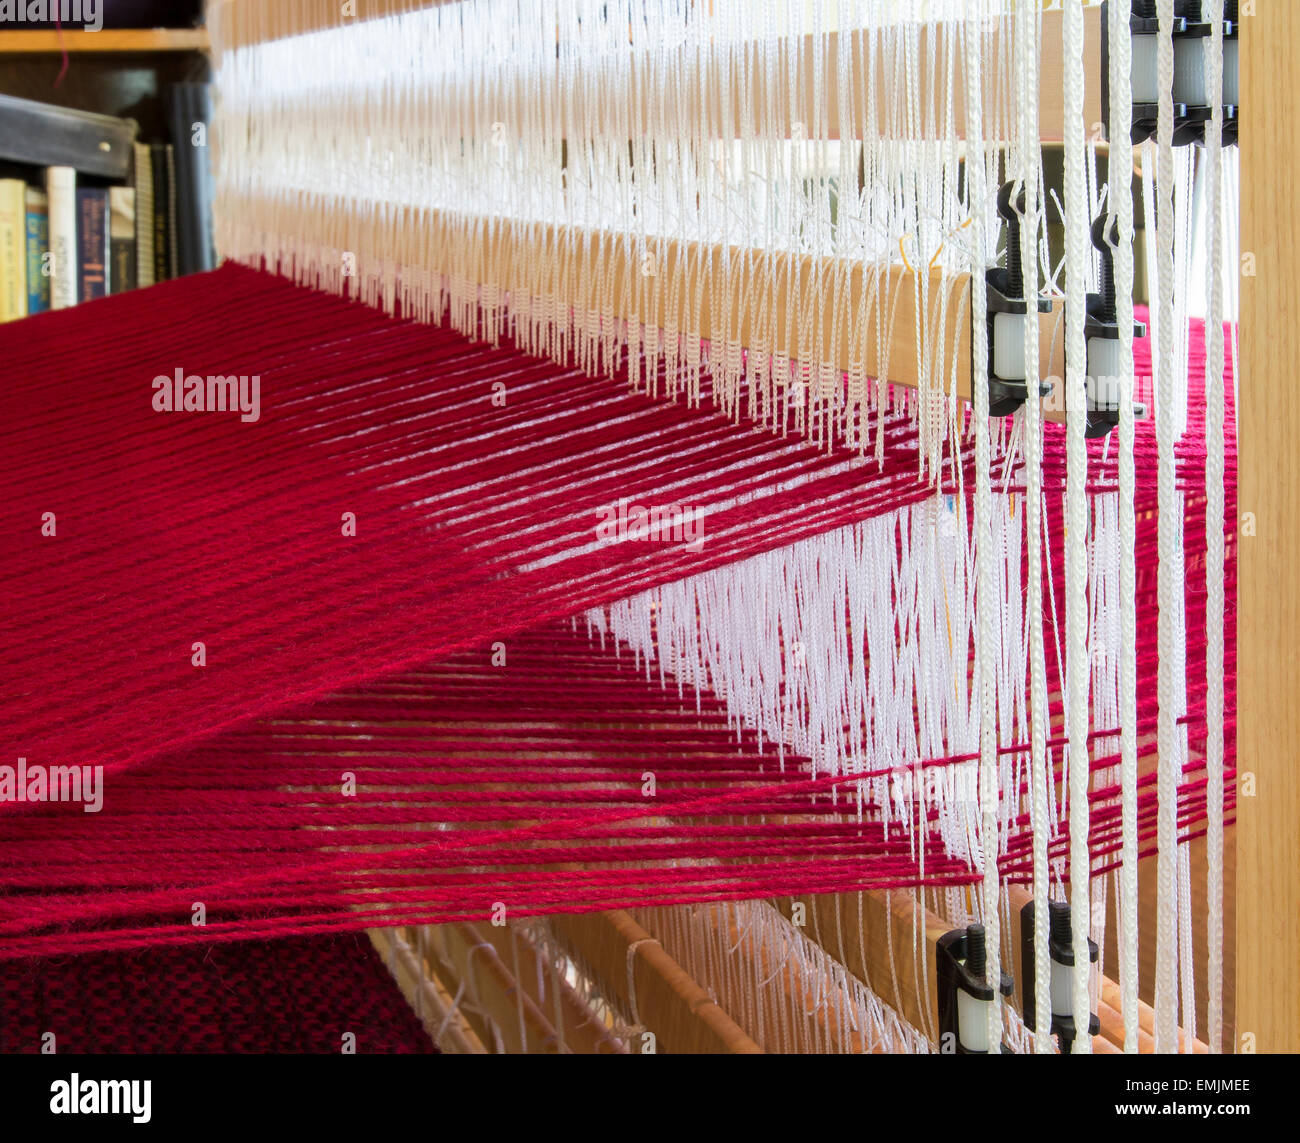 The white string heddles separate the red warp threads on this loom - Stock Image